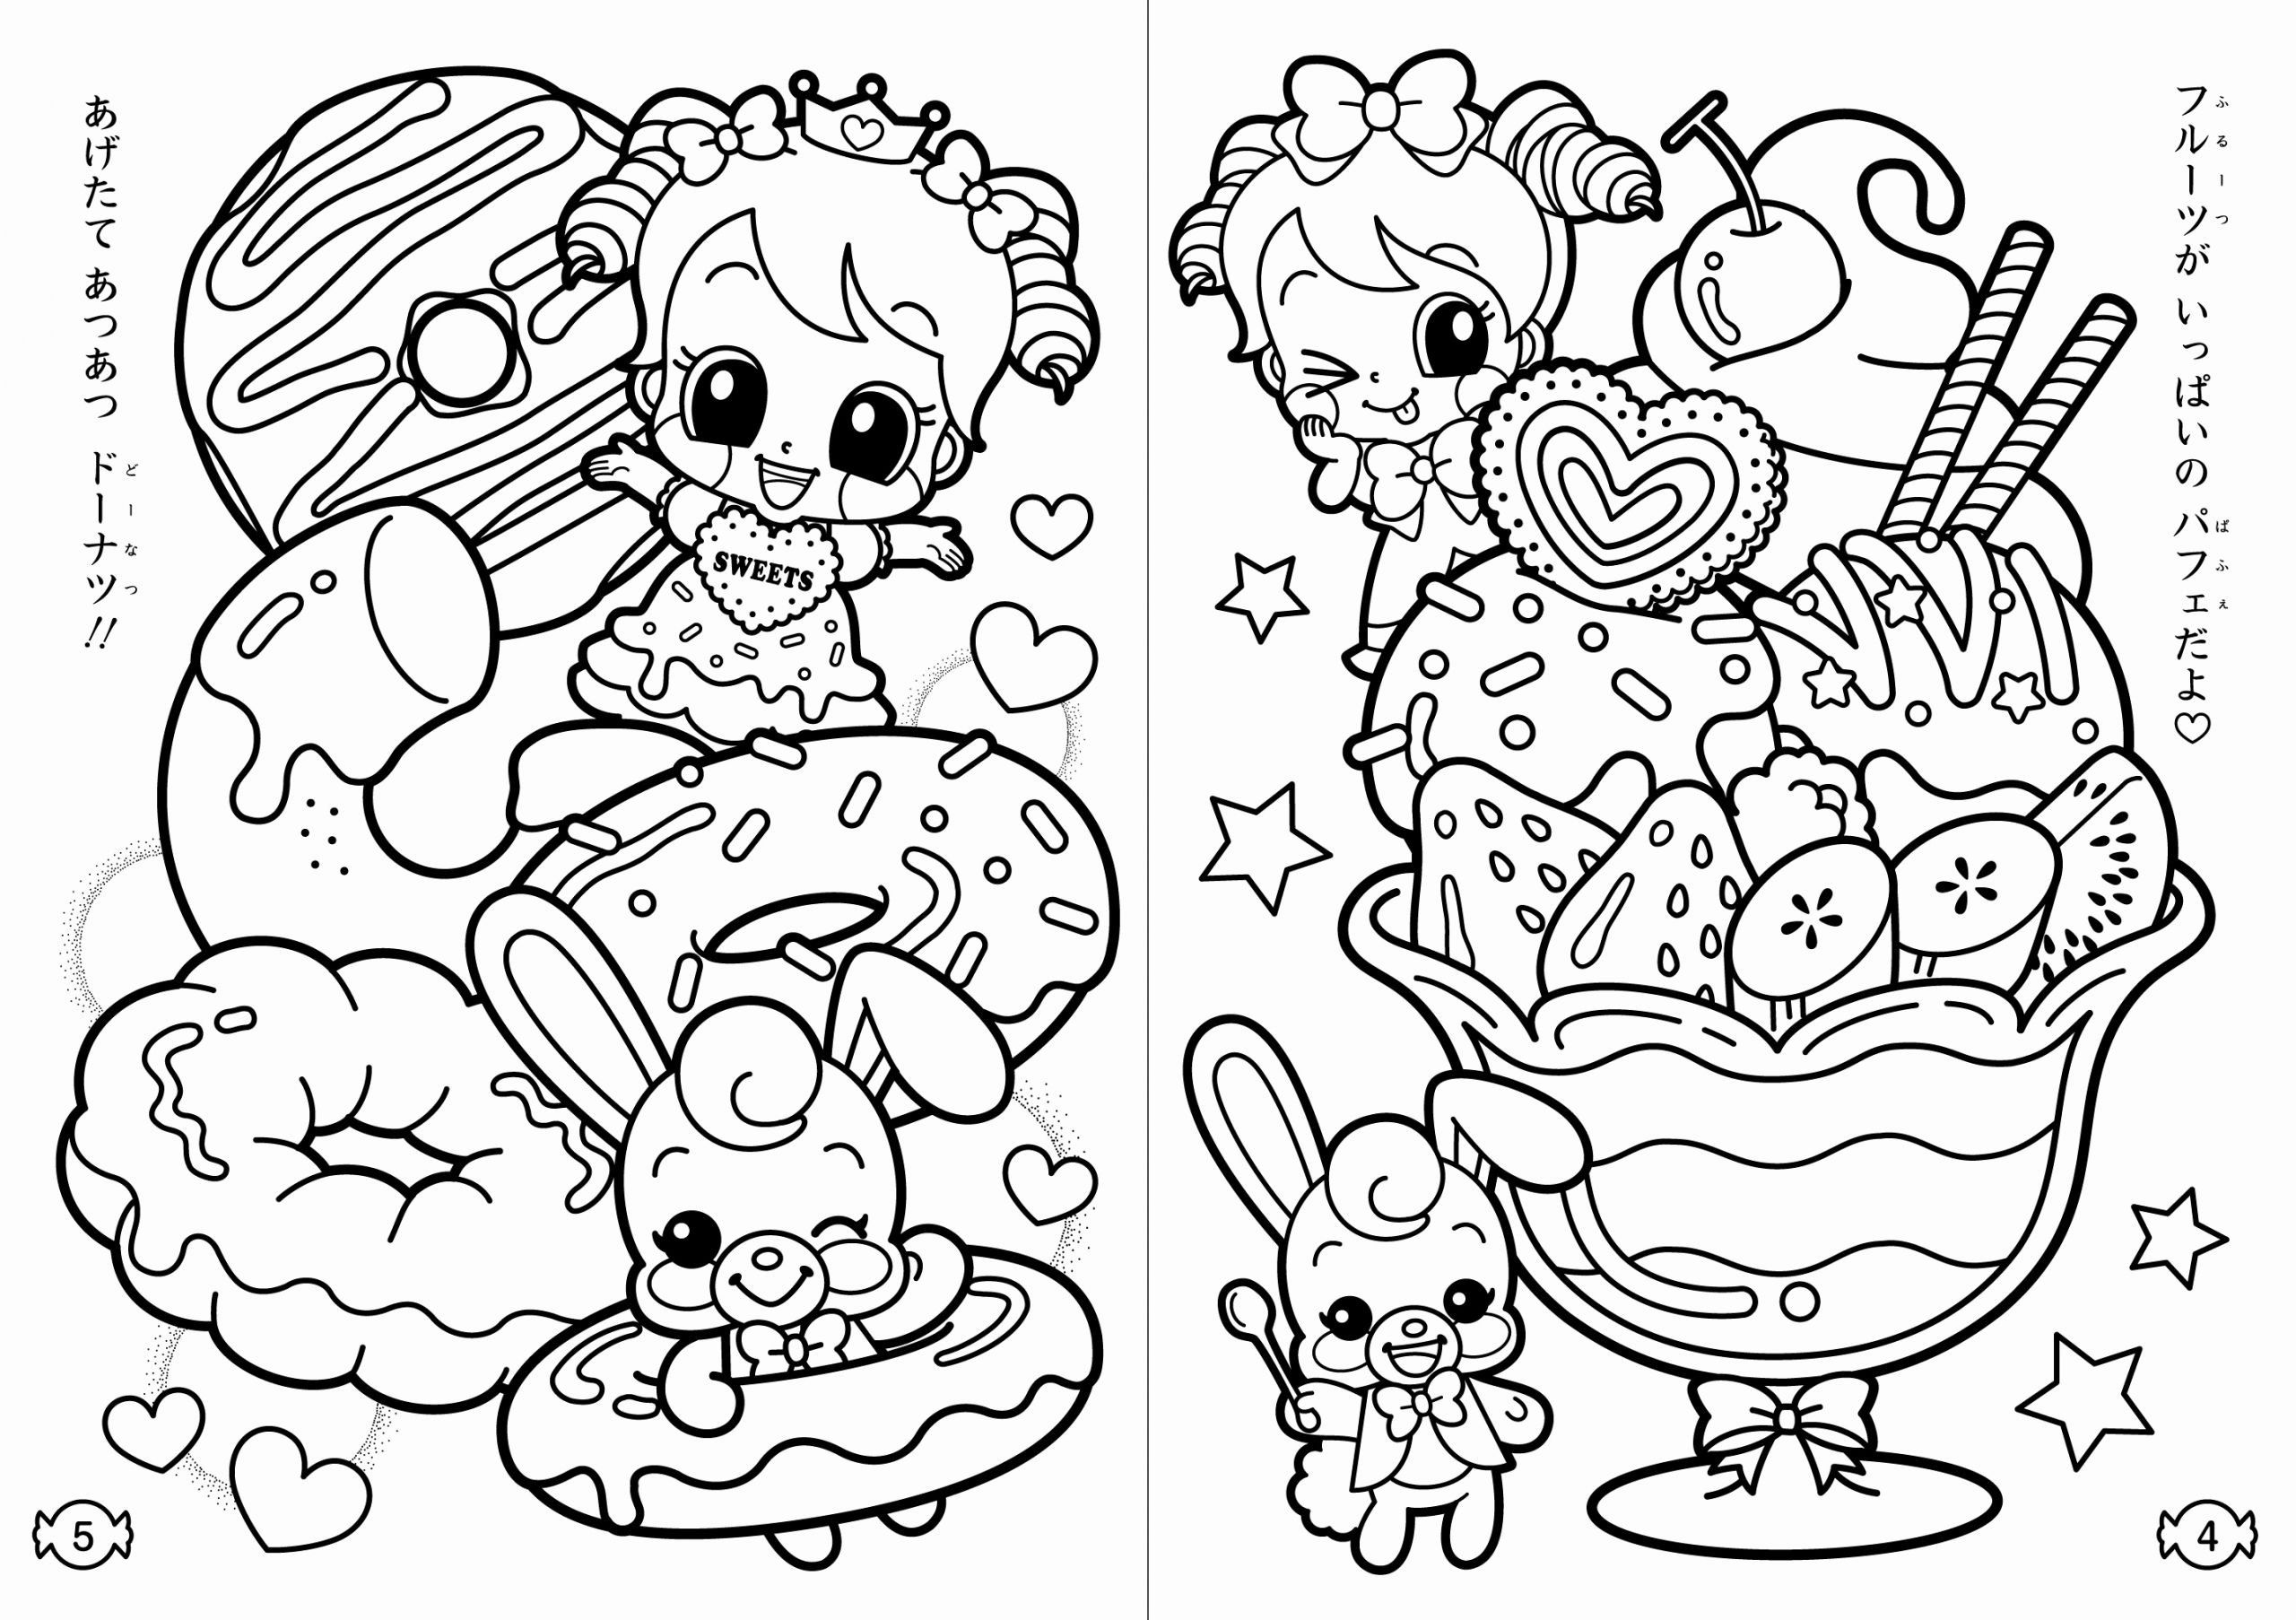 Kawaii Coloring Pages Animals Inspirational Cute Kawaii Coloring Pages At Getcolorings Unicorn Coloring Pages Disney Coloring Pages Cute Coloring Pages